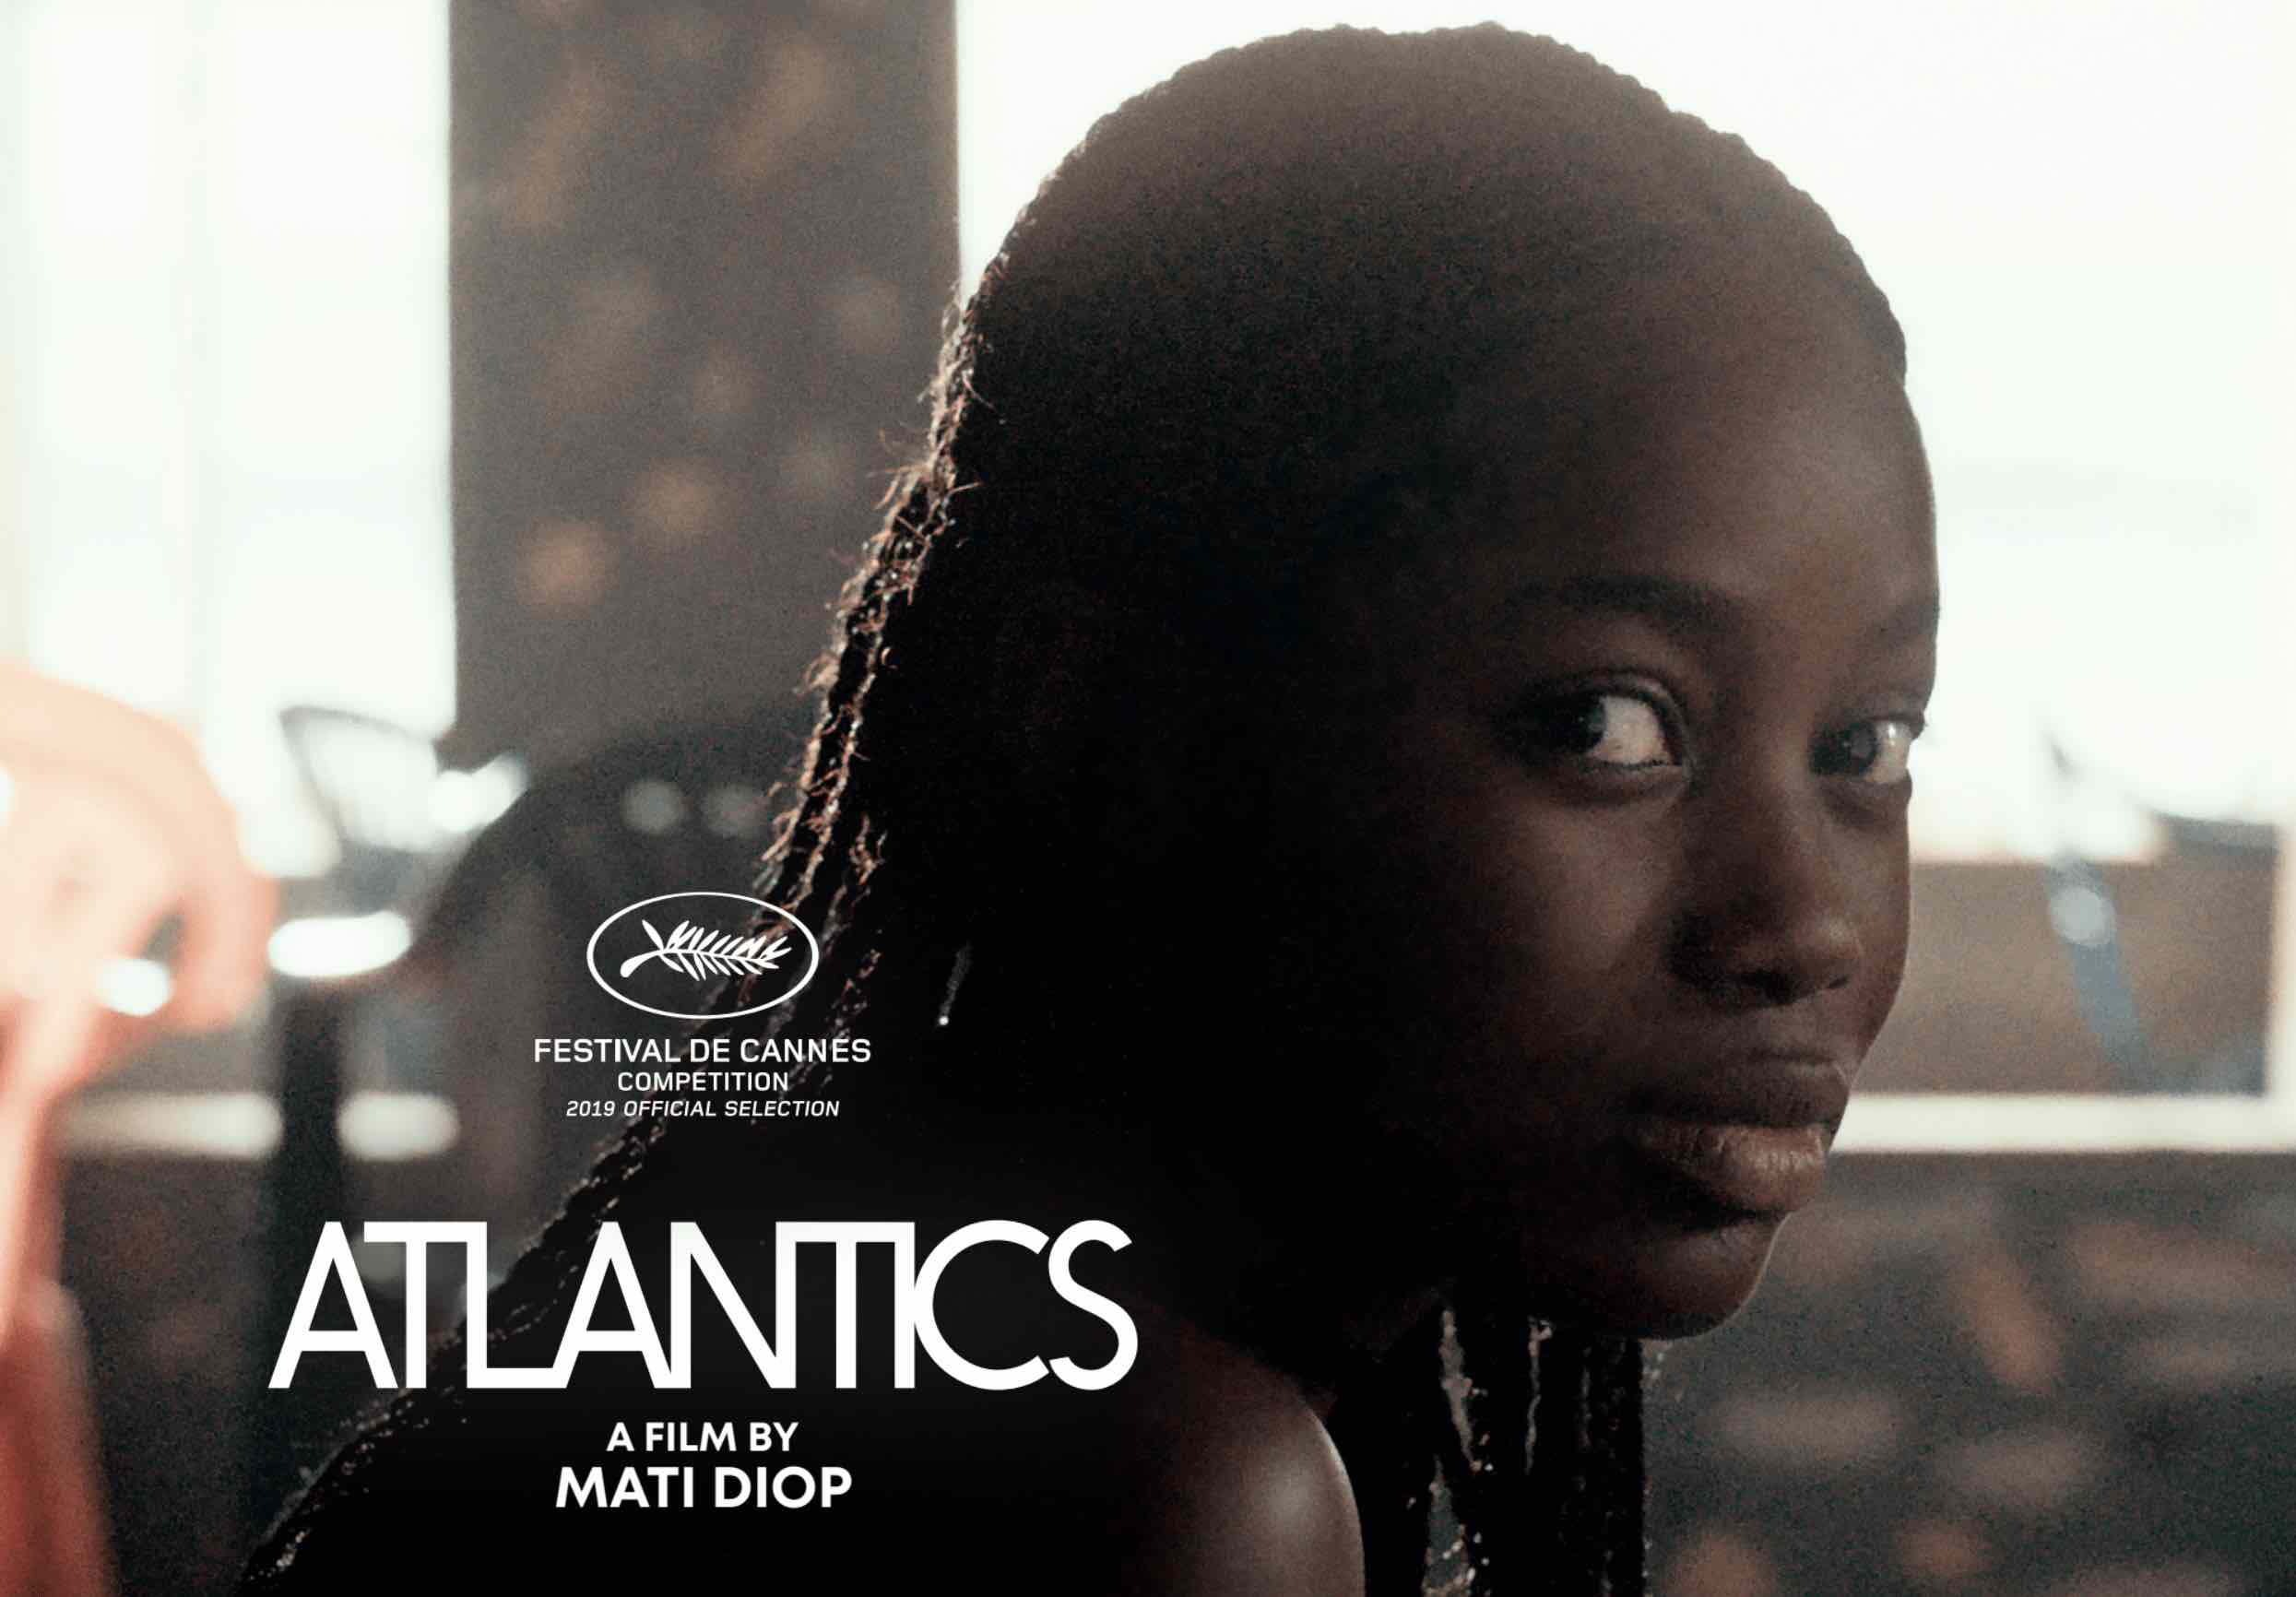 Cannes 2019: An Interview with Atlantics's Composer Fatima Al Qadiri